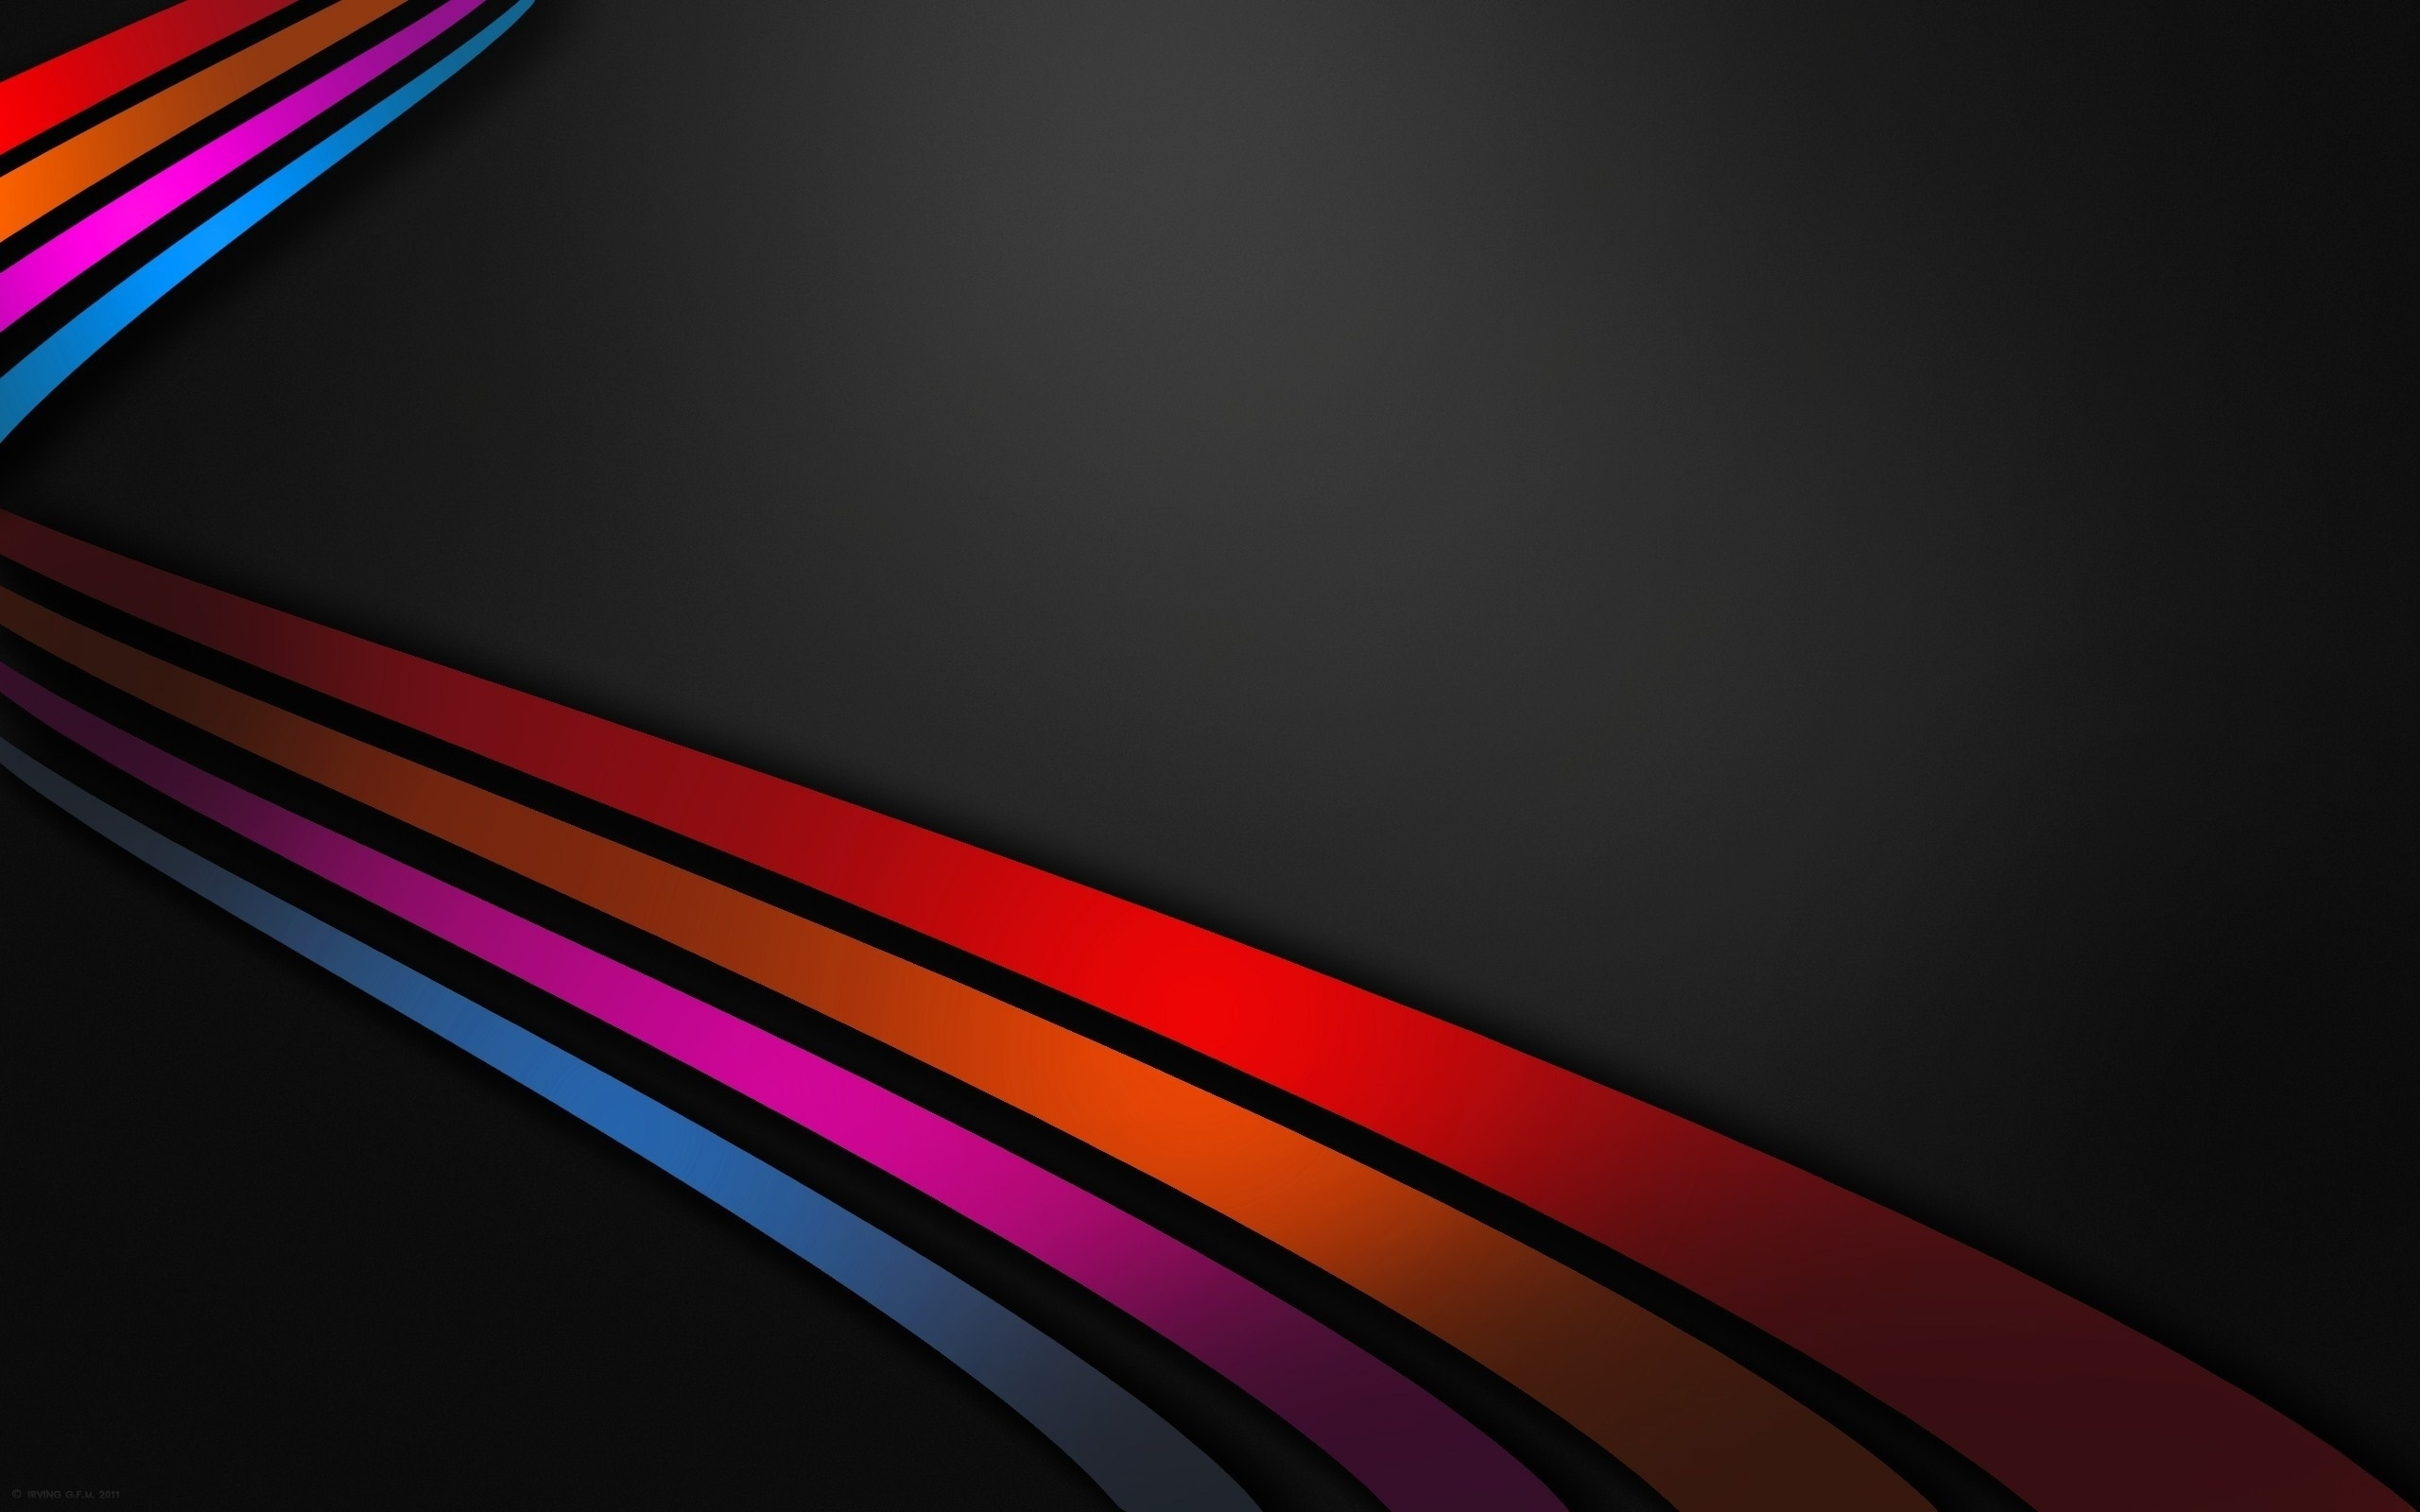 3d And Abstract Wallpapers - HD Desktop Backgrounds - Page 12